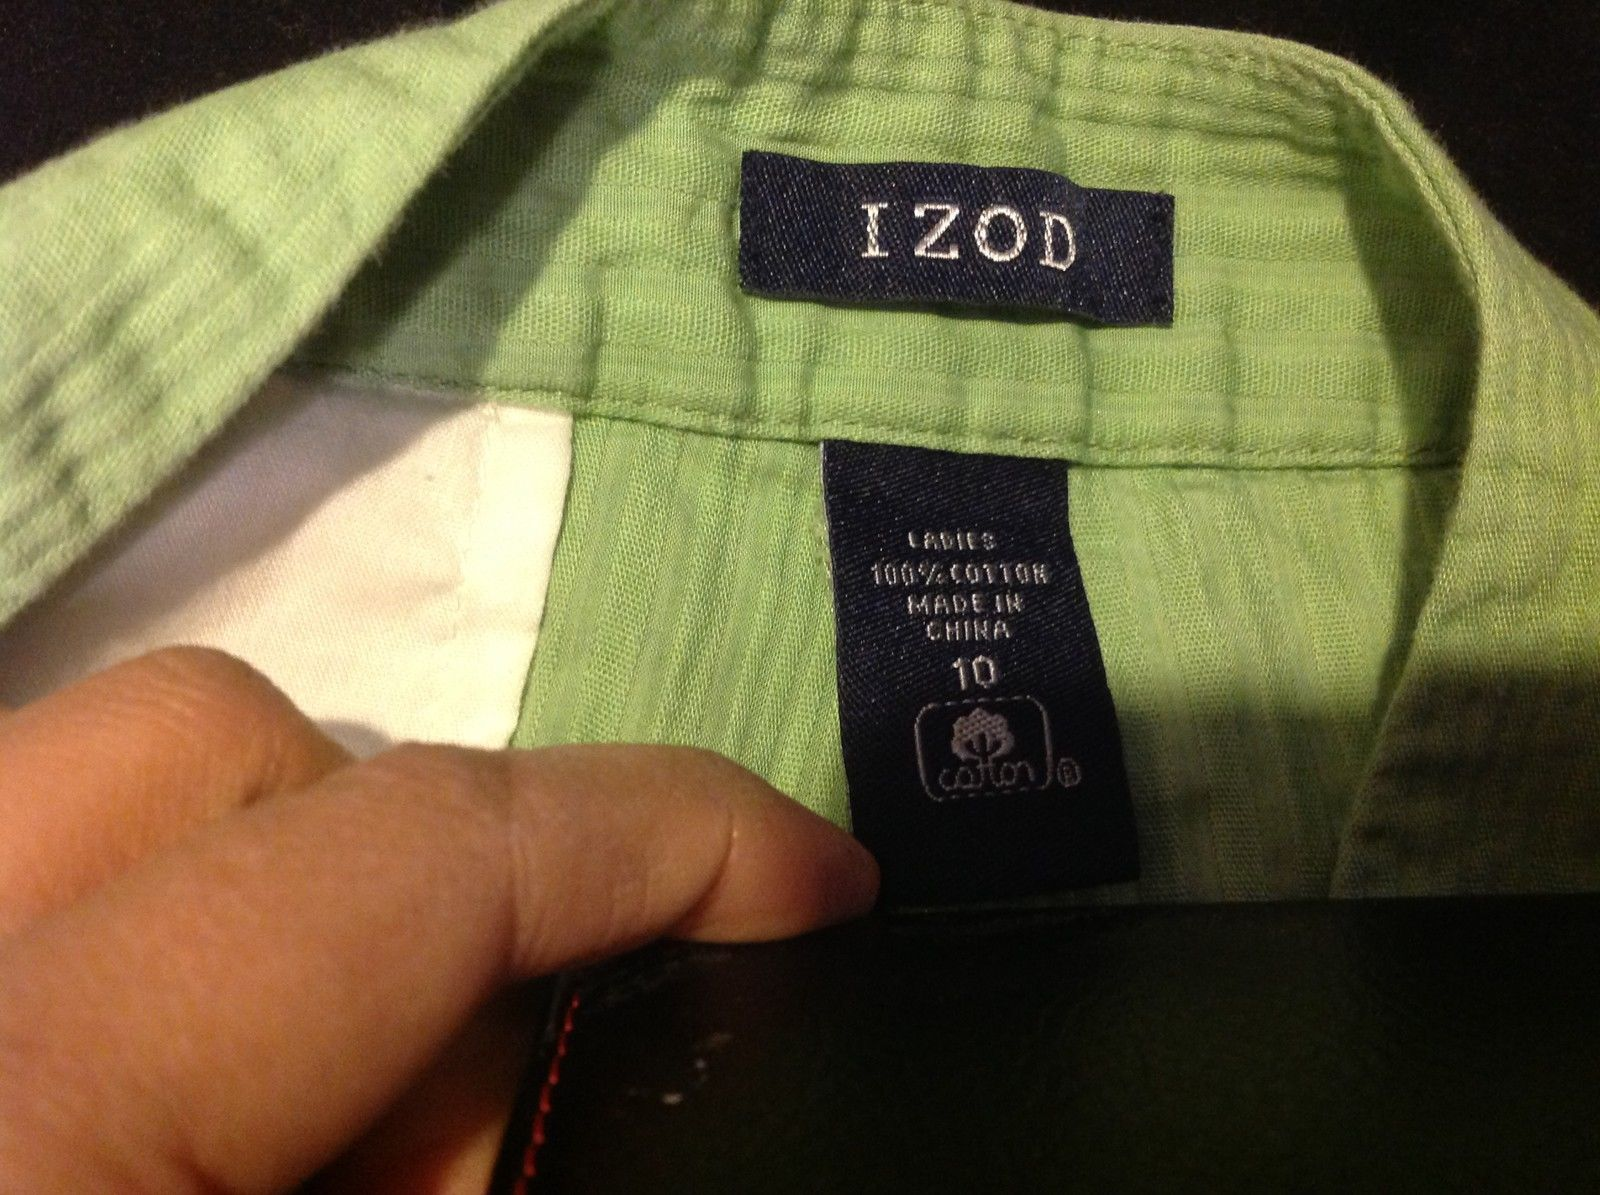 IZOD Ladies Three Quarter Length Green Colored Pants Size 10